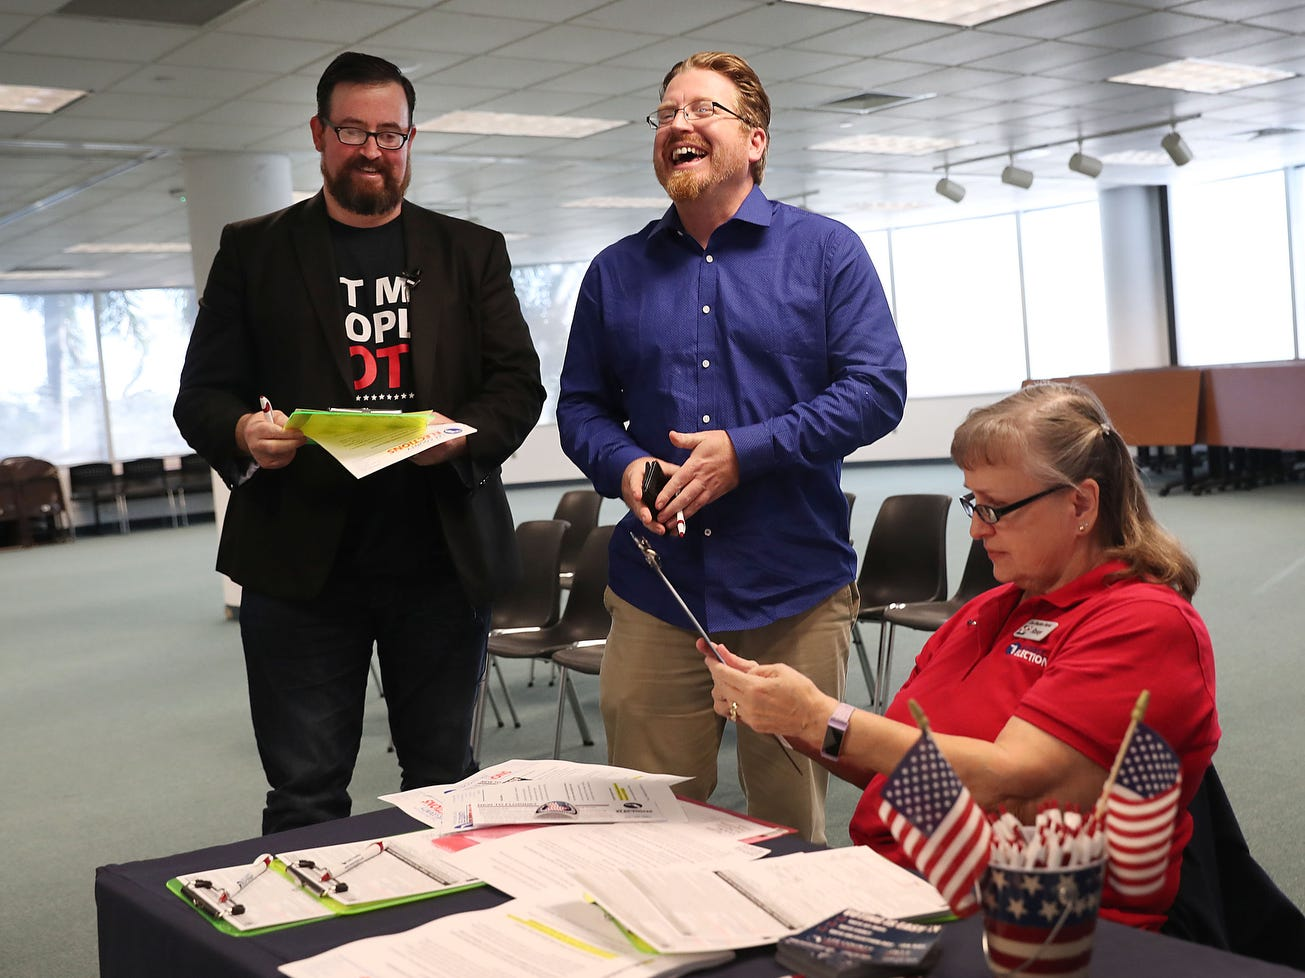 Neil Volz (L) and Lance Wissinger (C) fill out their voter registration forms with the help of Rosey Brockamp, a voter registration worker at the Lee Country Supervisor of Elections office.